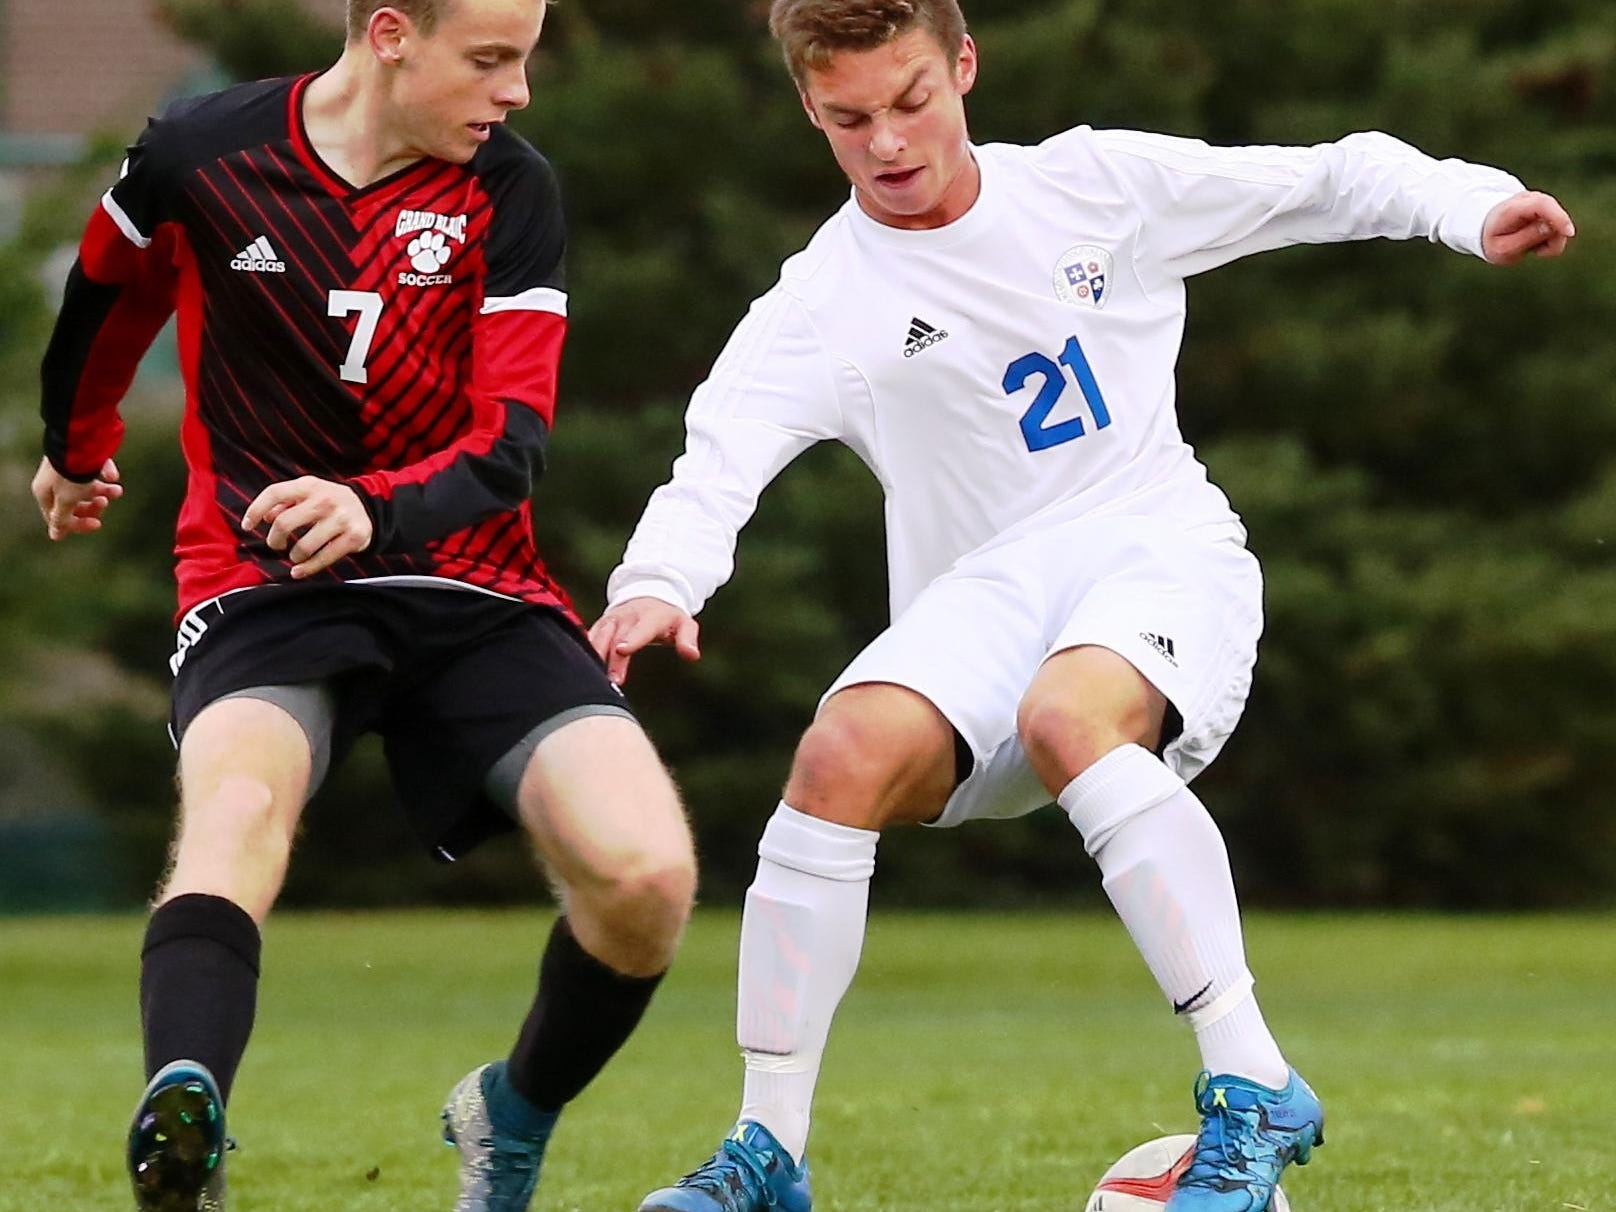 Catholic Central's Charles Trevisan (right) tries to keep control against Grand Blanc's Garrett Miler.